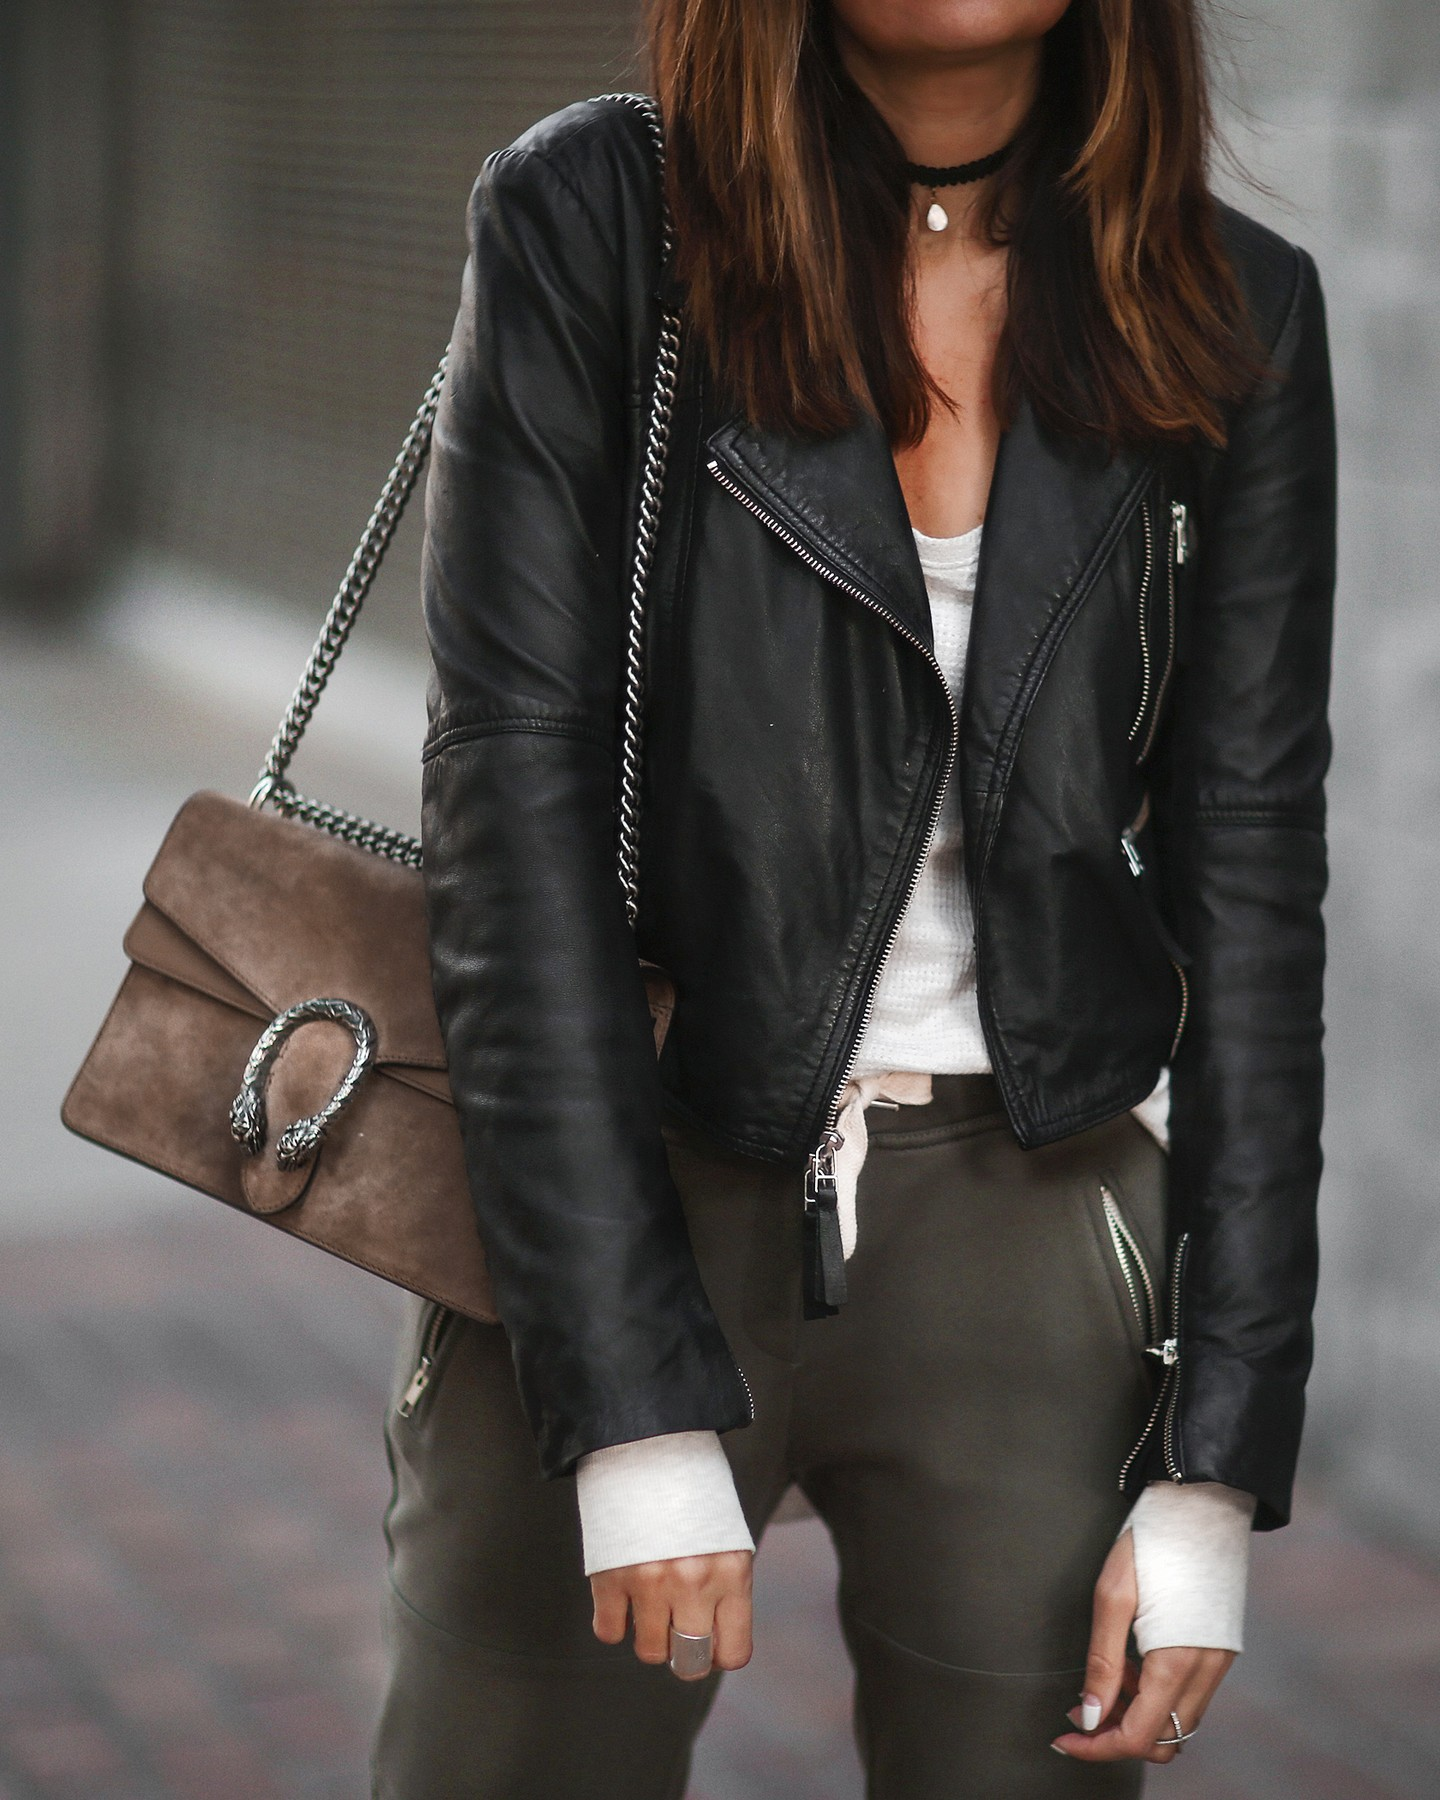 jogger pants and leather jacket